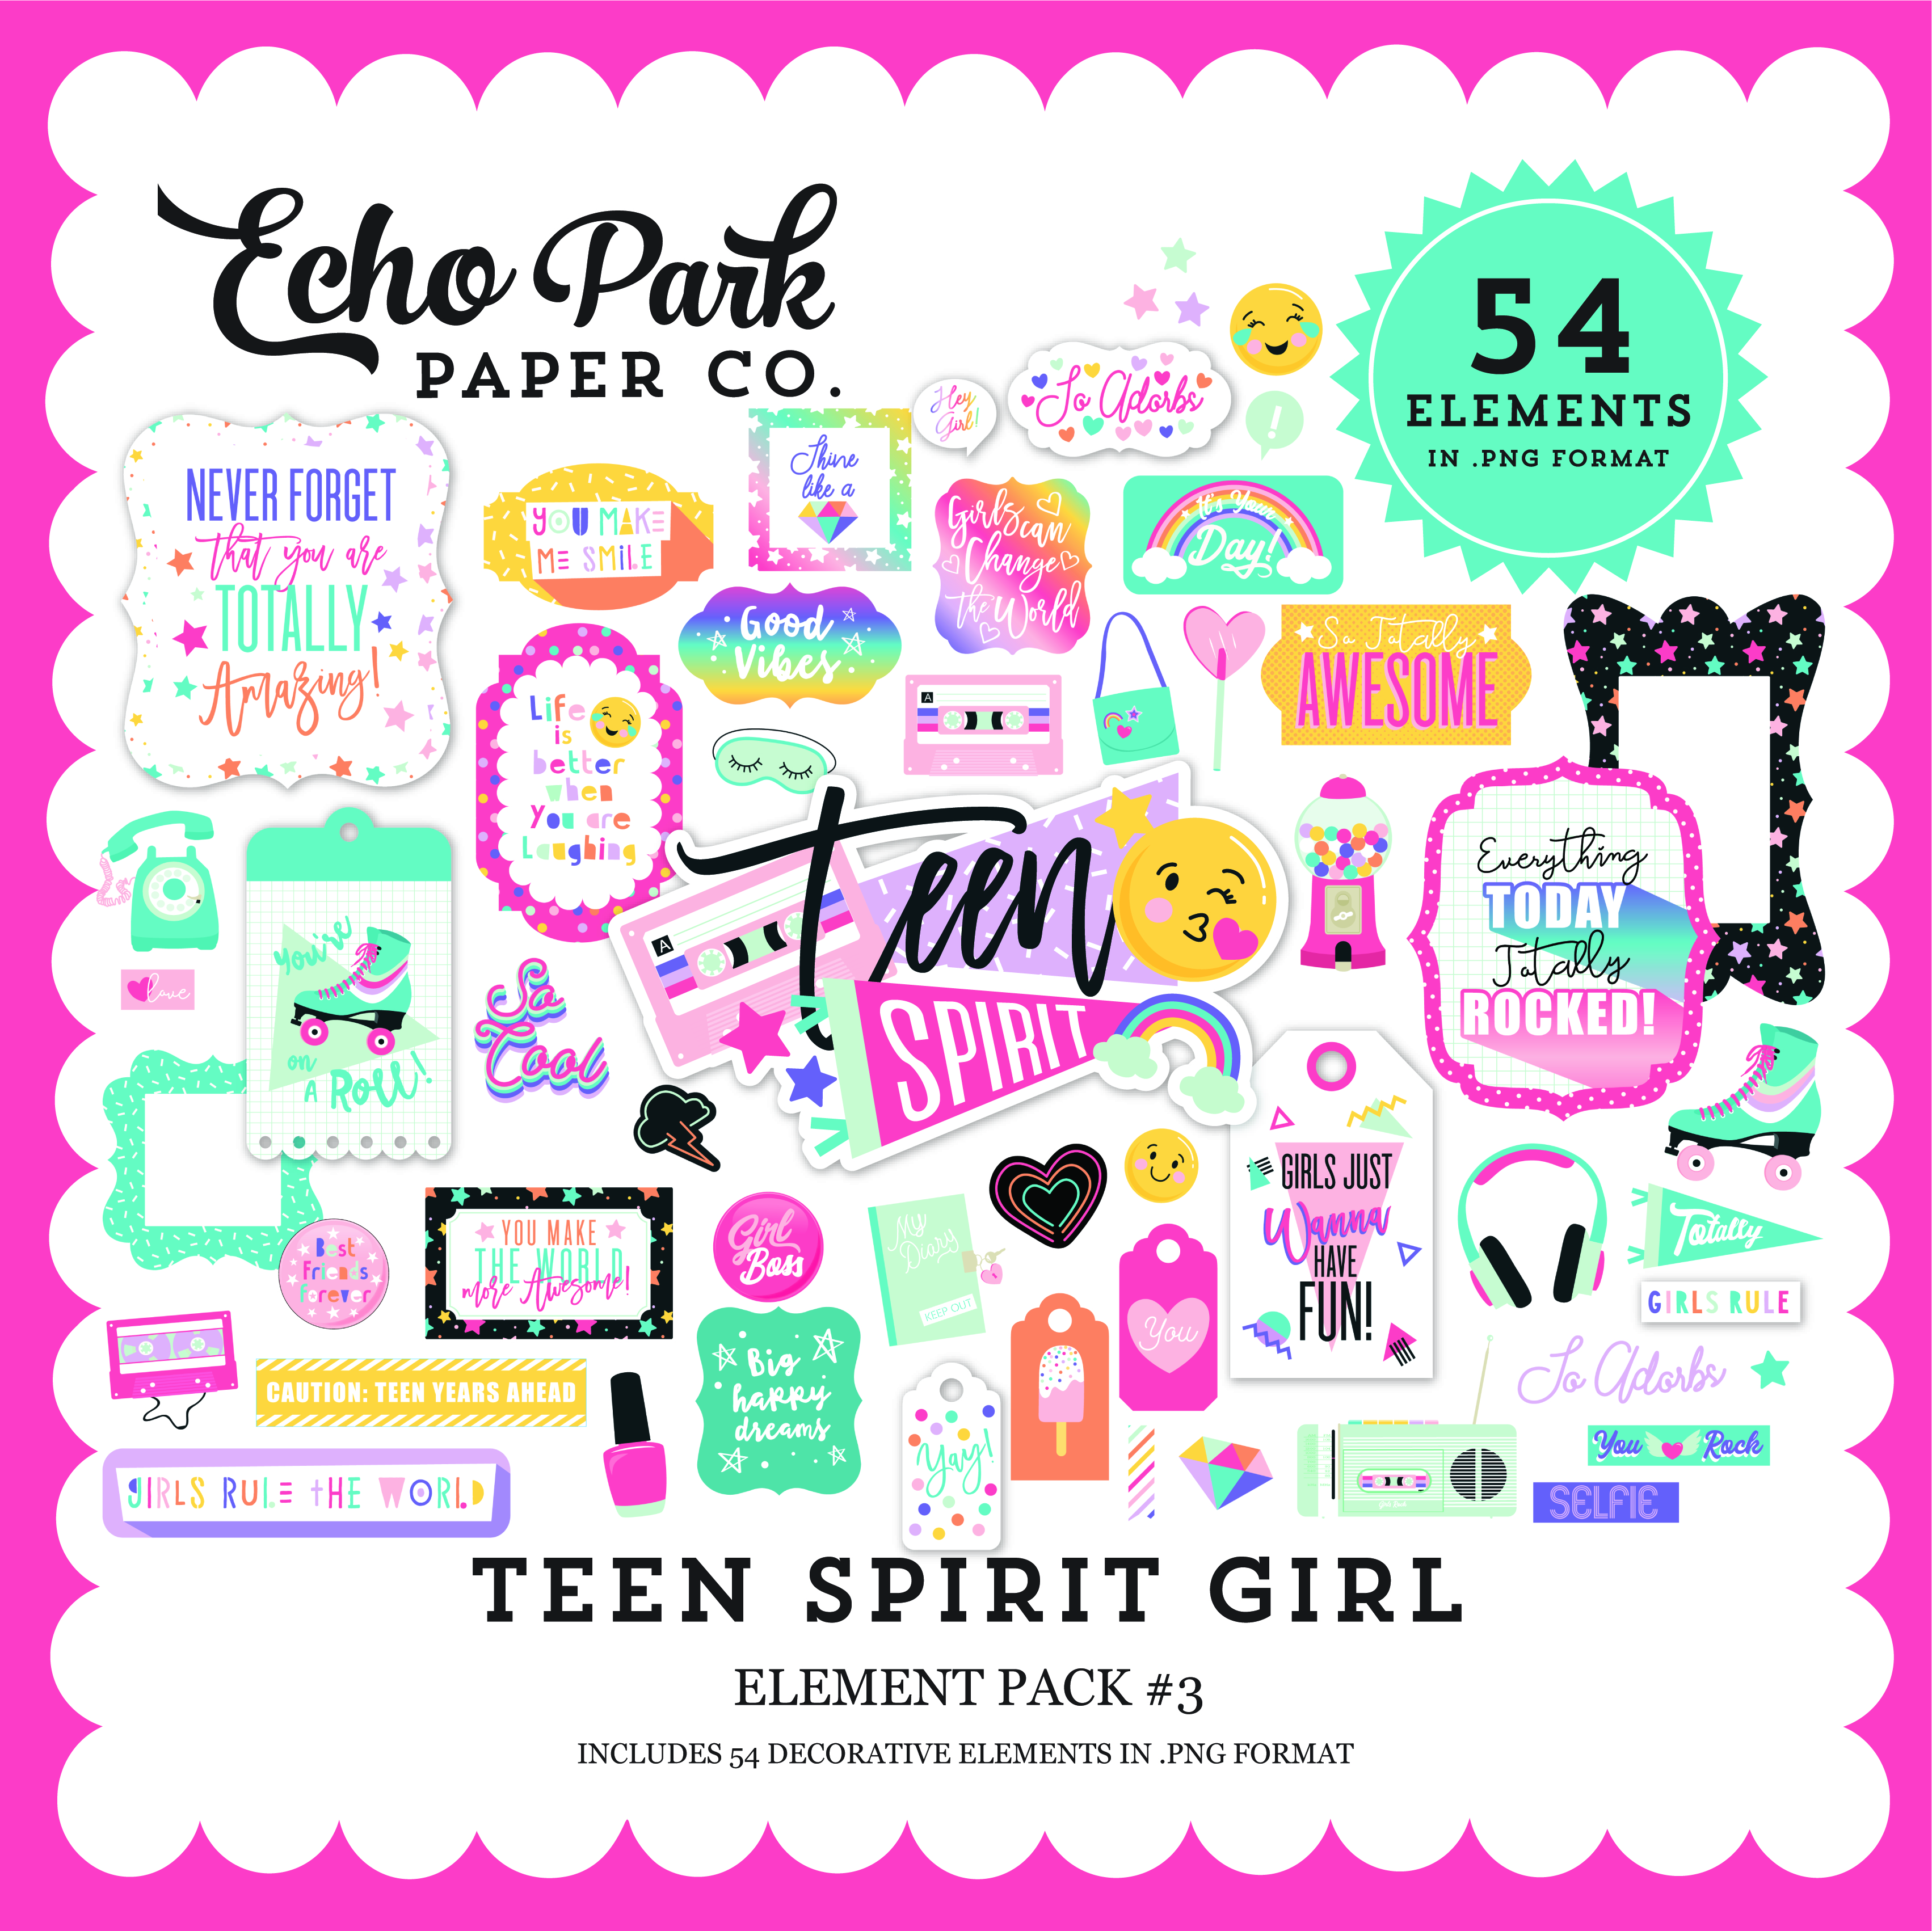 Teen Spirit Girl Element Pack #3